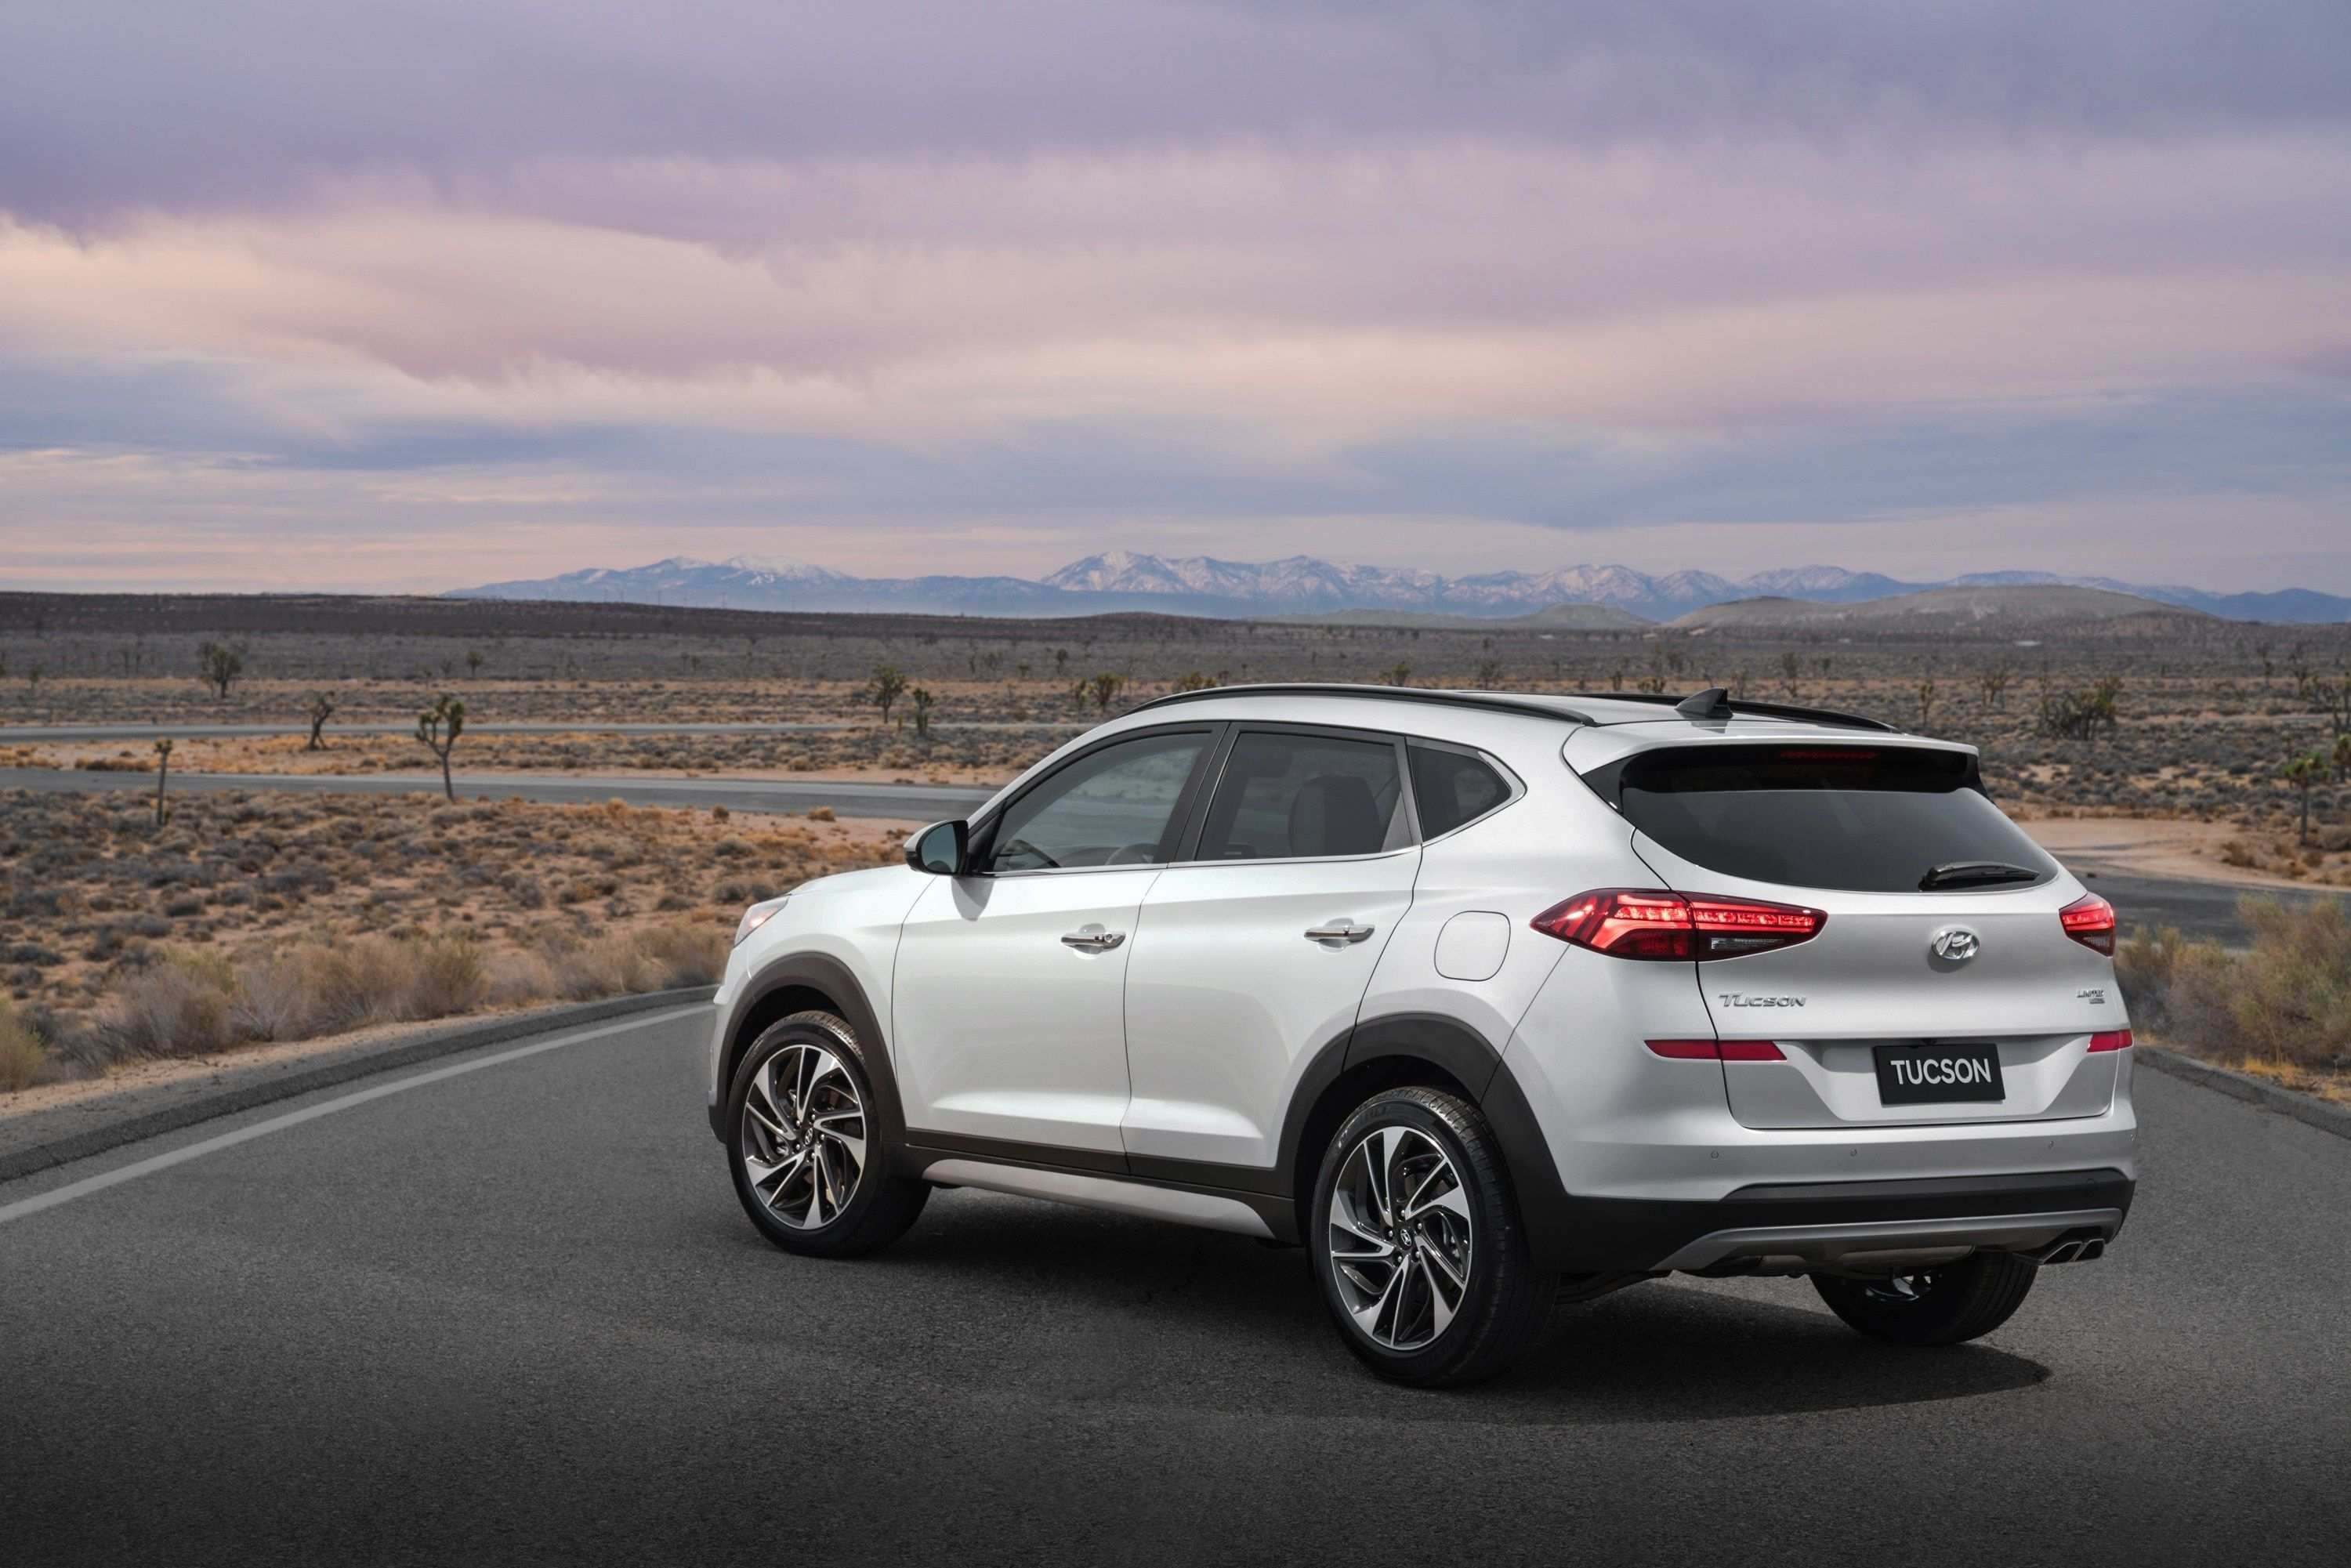 41 Gallery of Best Kia Tucson 2019 Concept Redesign And Review Interior by Best Kia Tucson 2019 Concept Redesign And Review